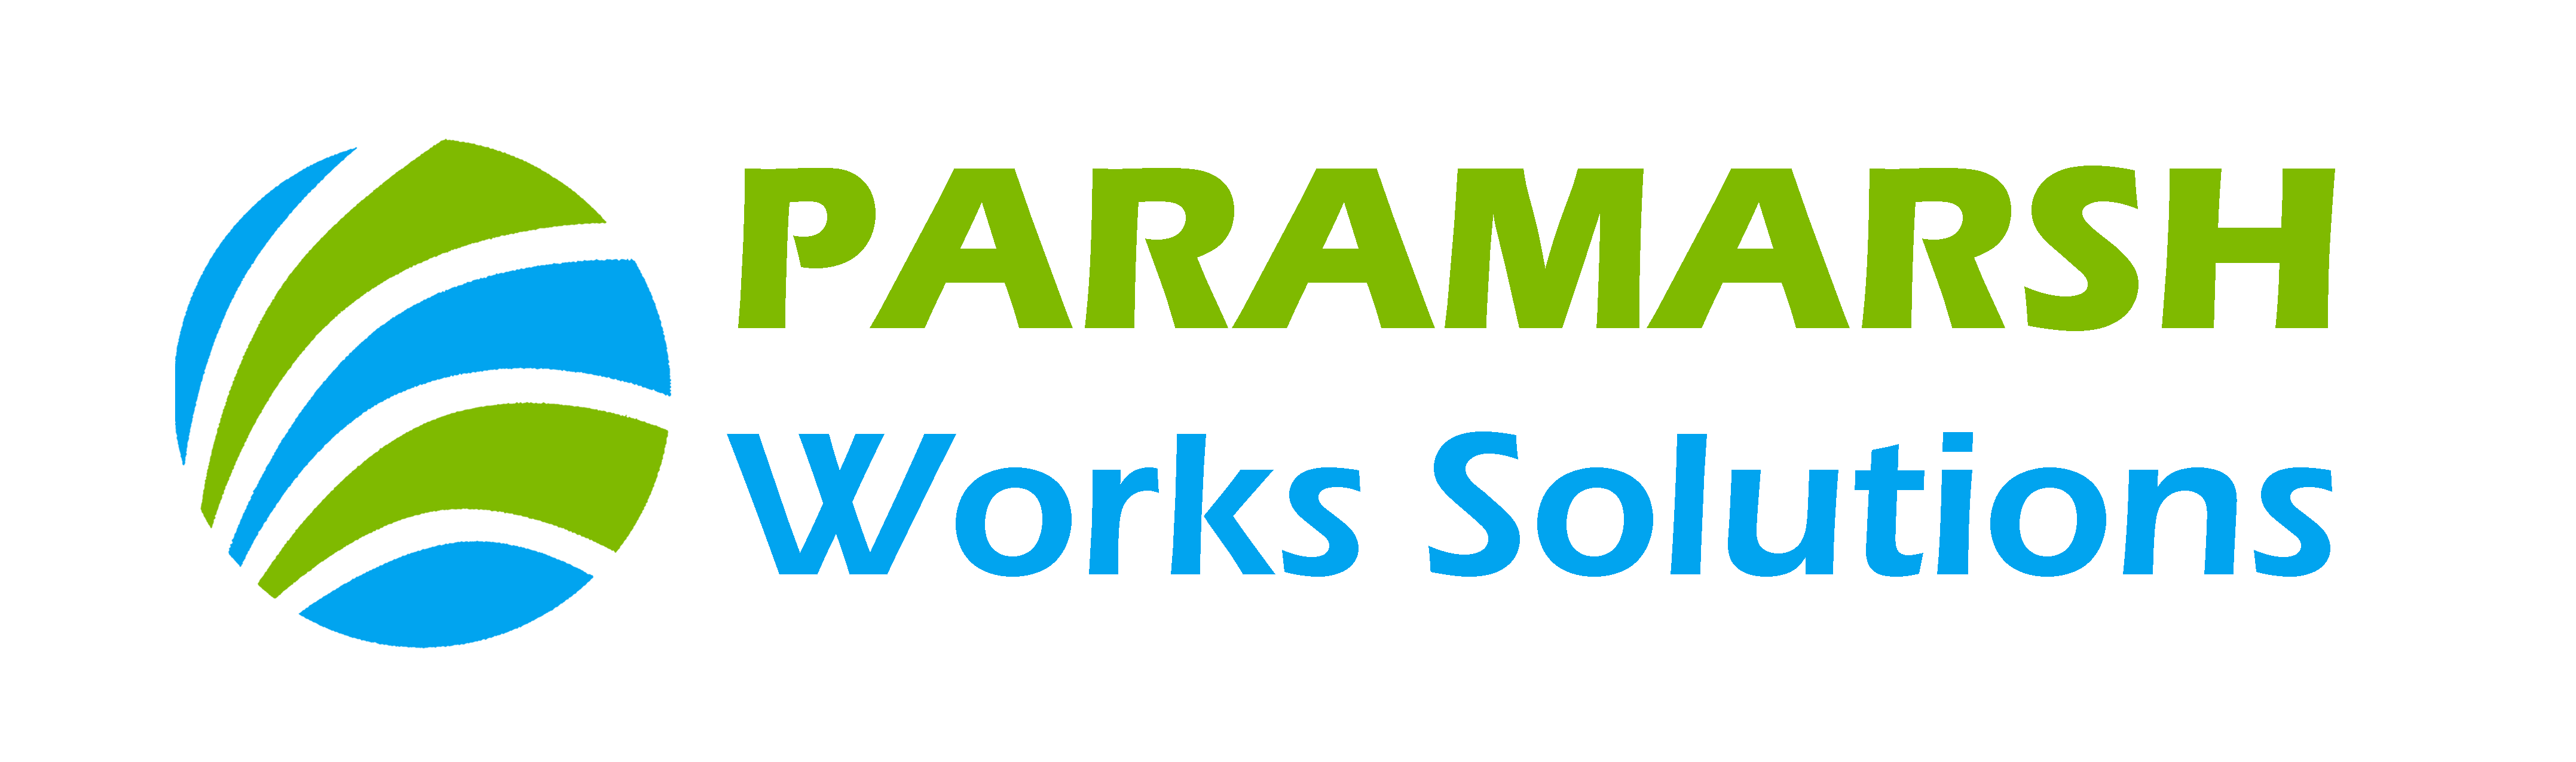 Paramarsh Works Solutions